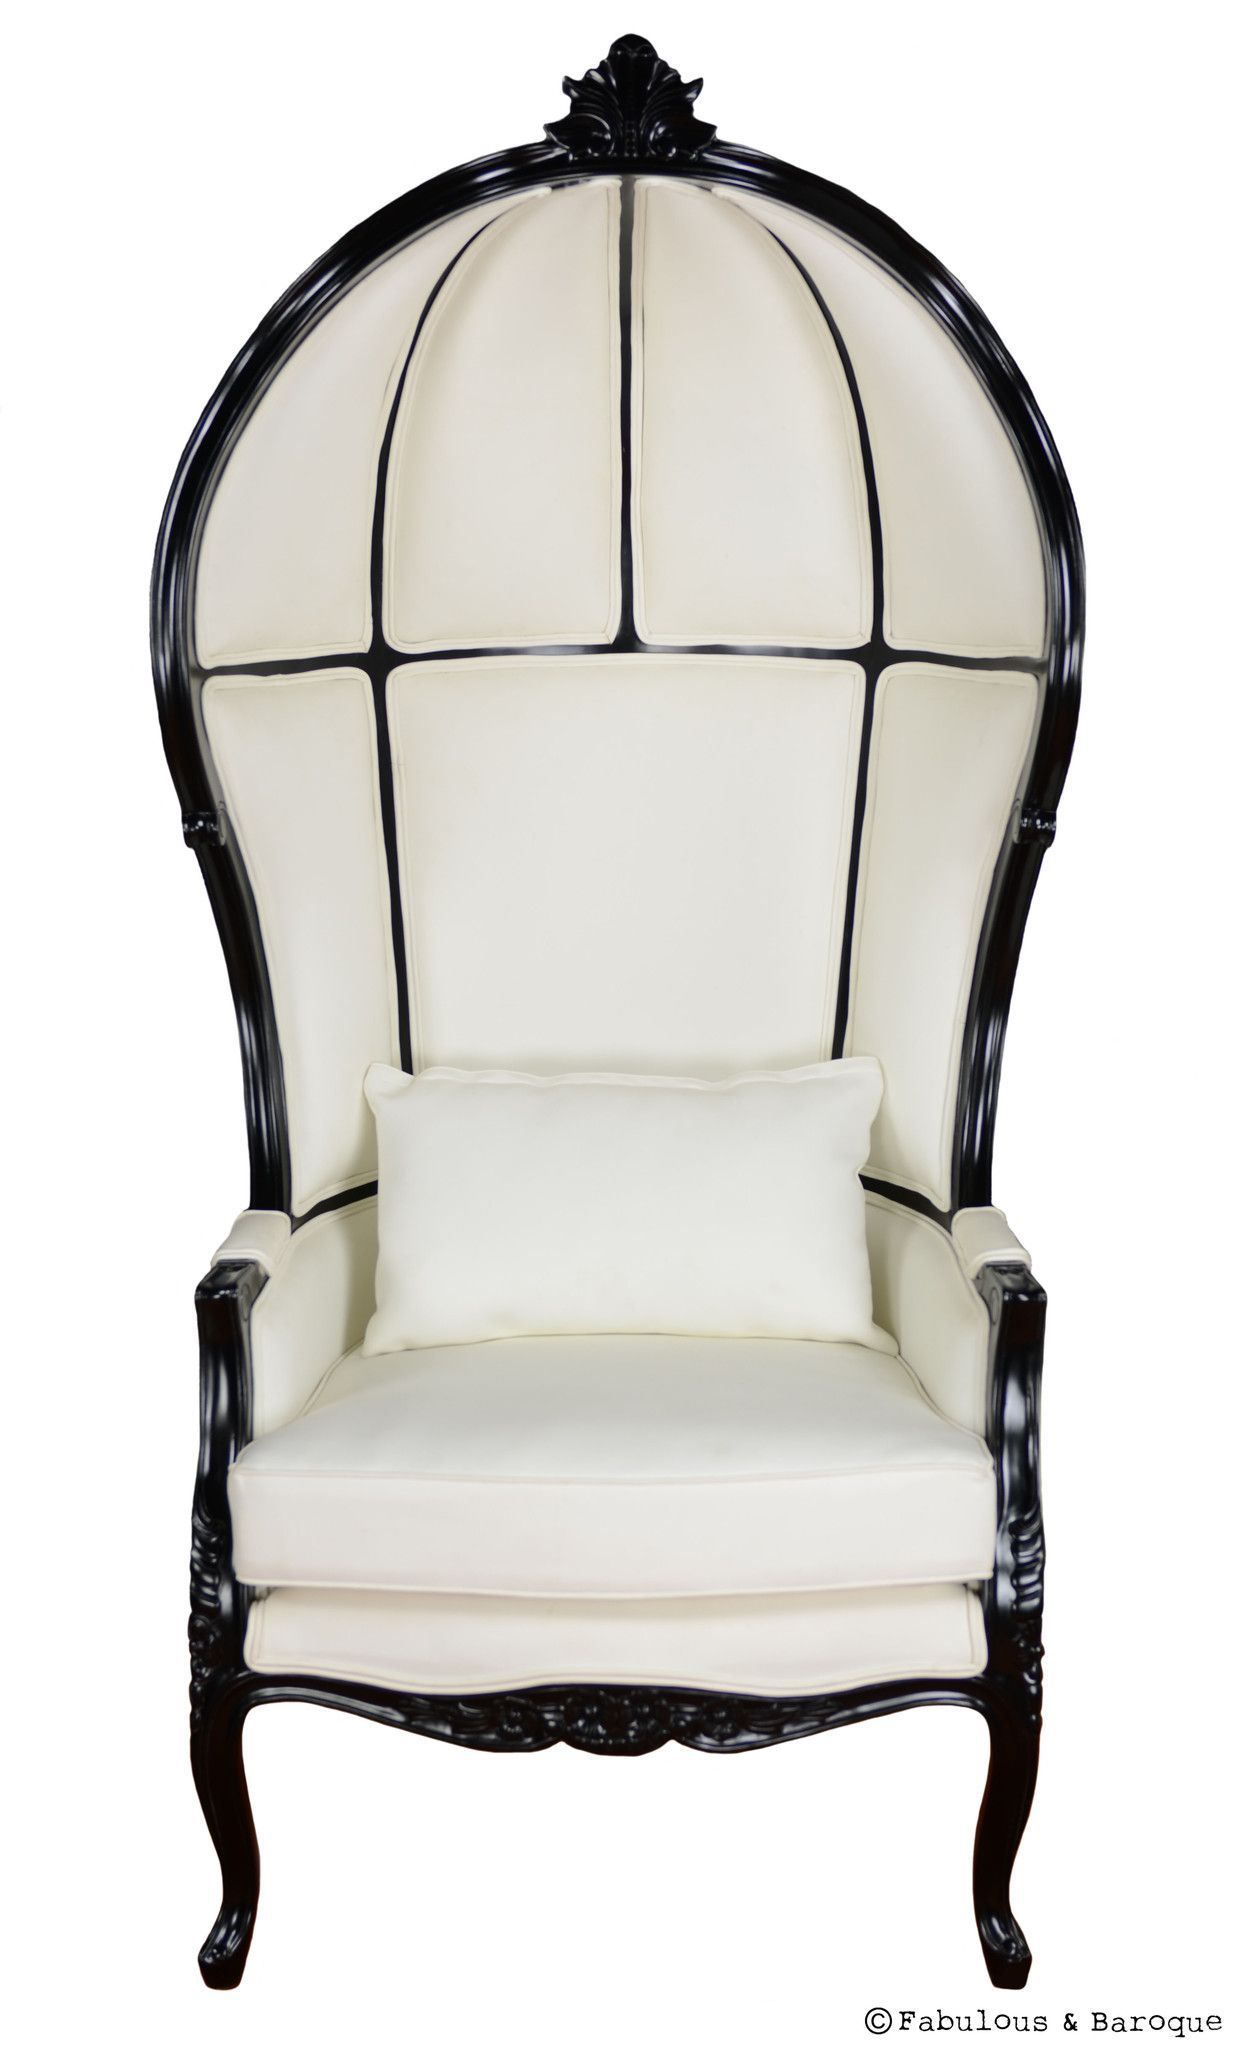 Ornate Bedroom Chairs Victoire Balloon Chair White Black Baroque Nice And Rococo